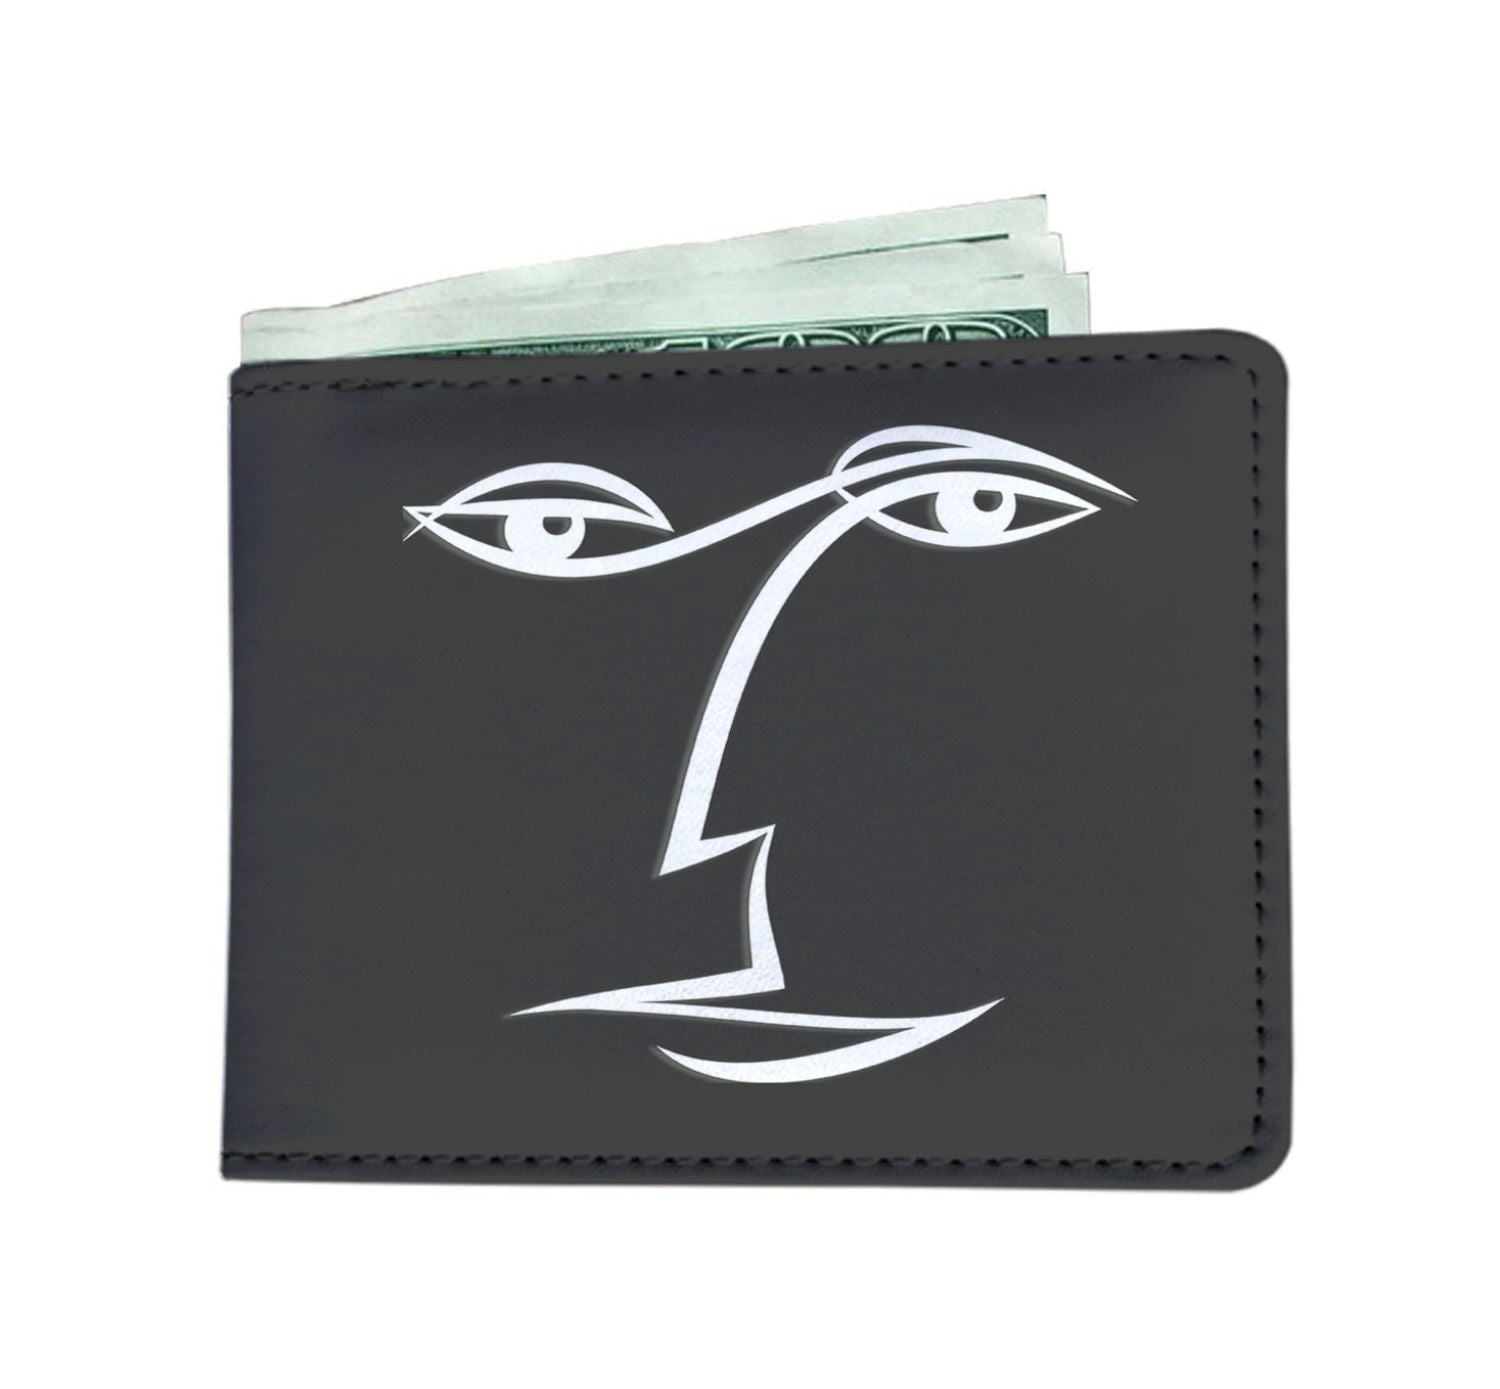 FaceTime Men's Wallet from Vluxe by Lucky Nahum